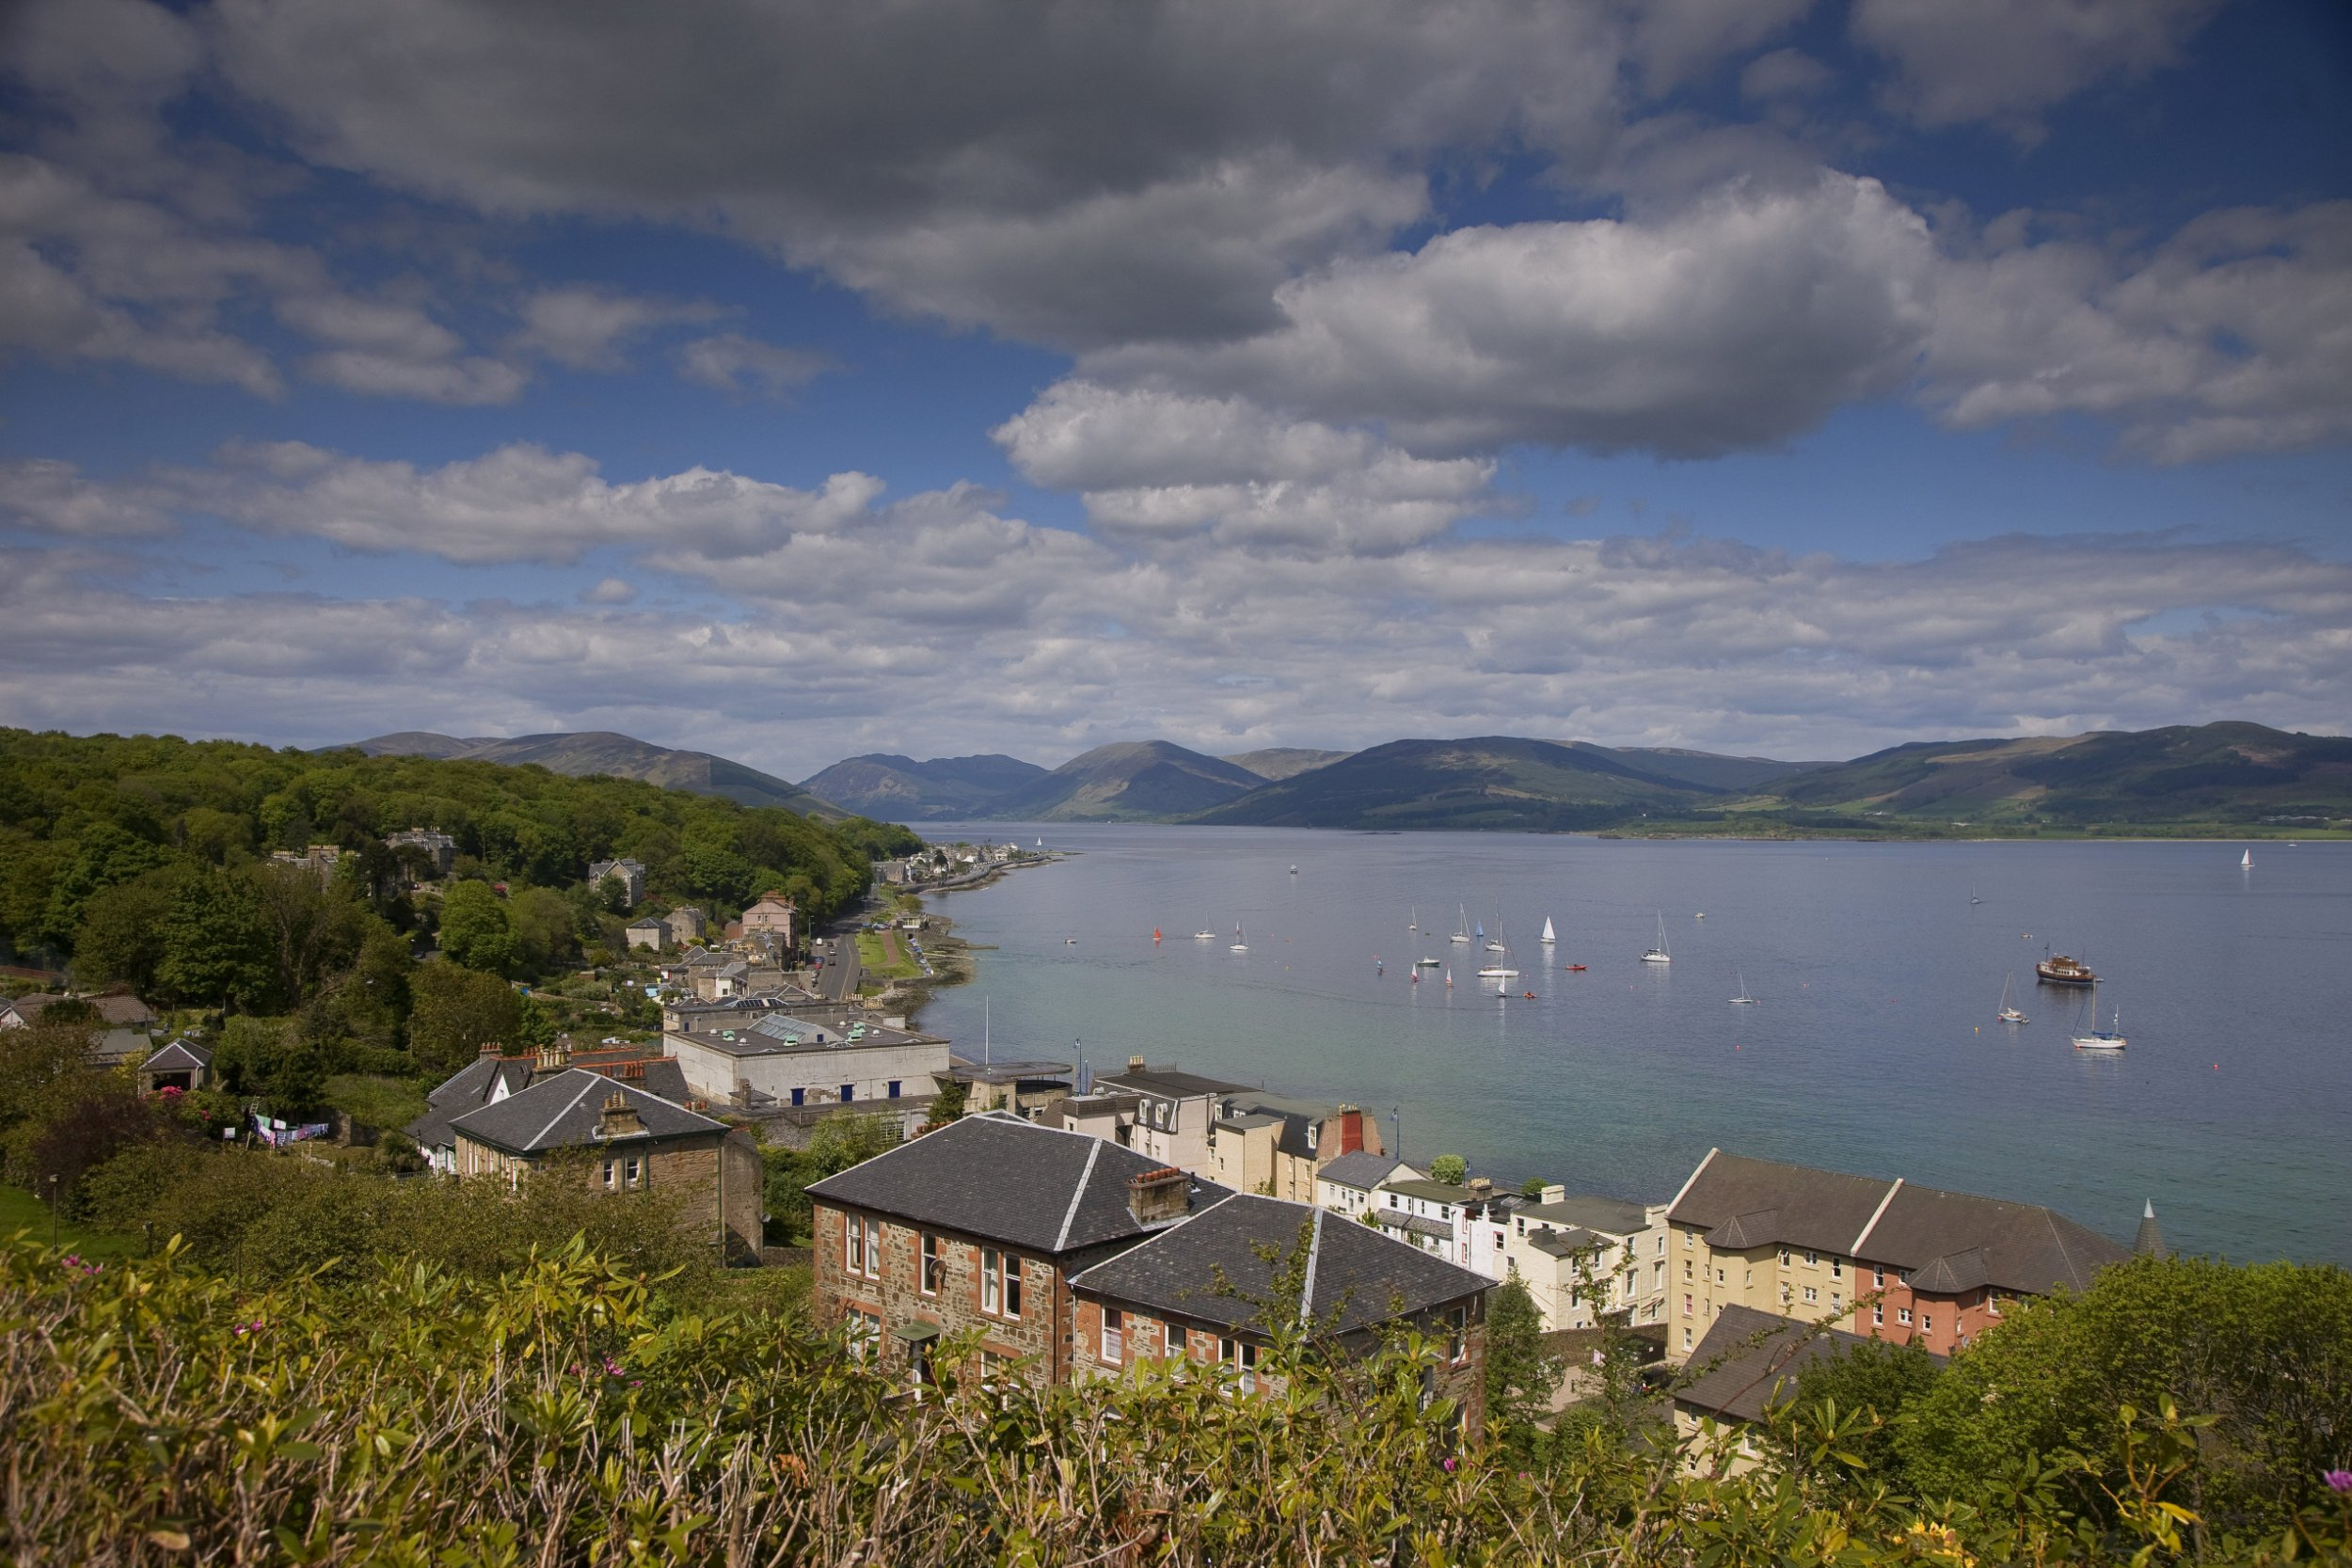 View looking east from Rothesay, Isle of Bute, Scotland, United Kingdom. (Photo by: UIG via Getty Images)